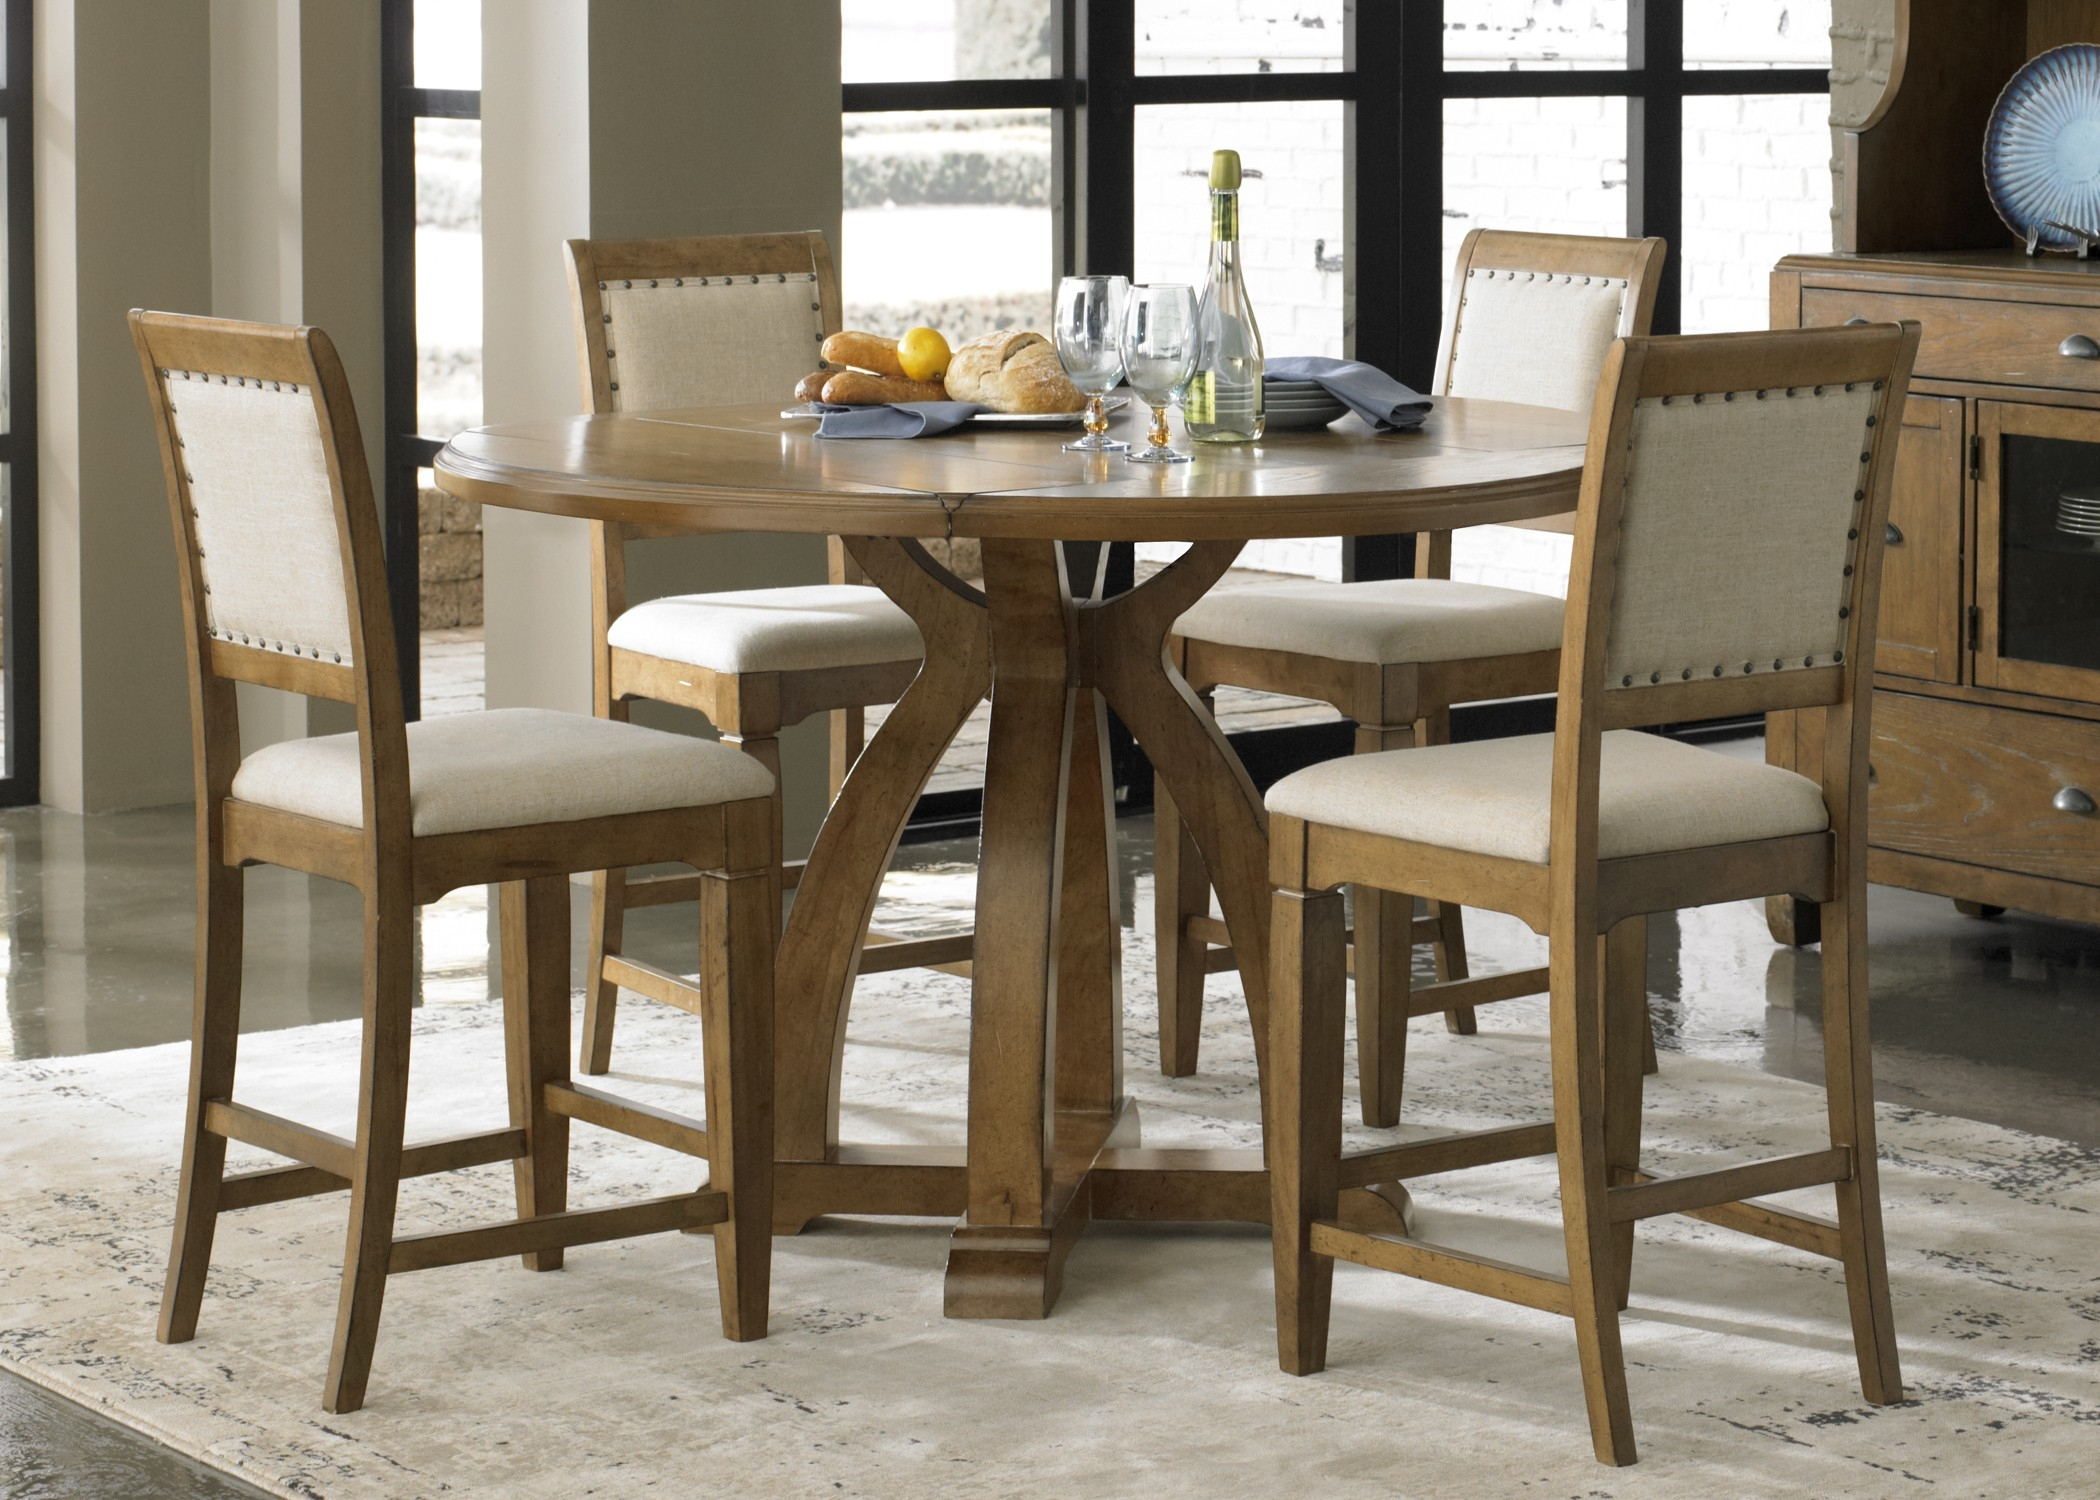 Solid Wood Counter Height Table And Chairs